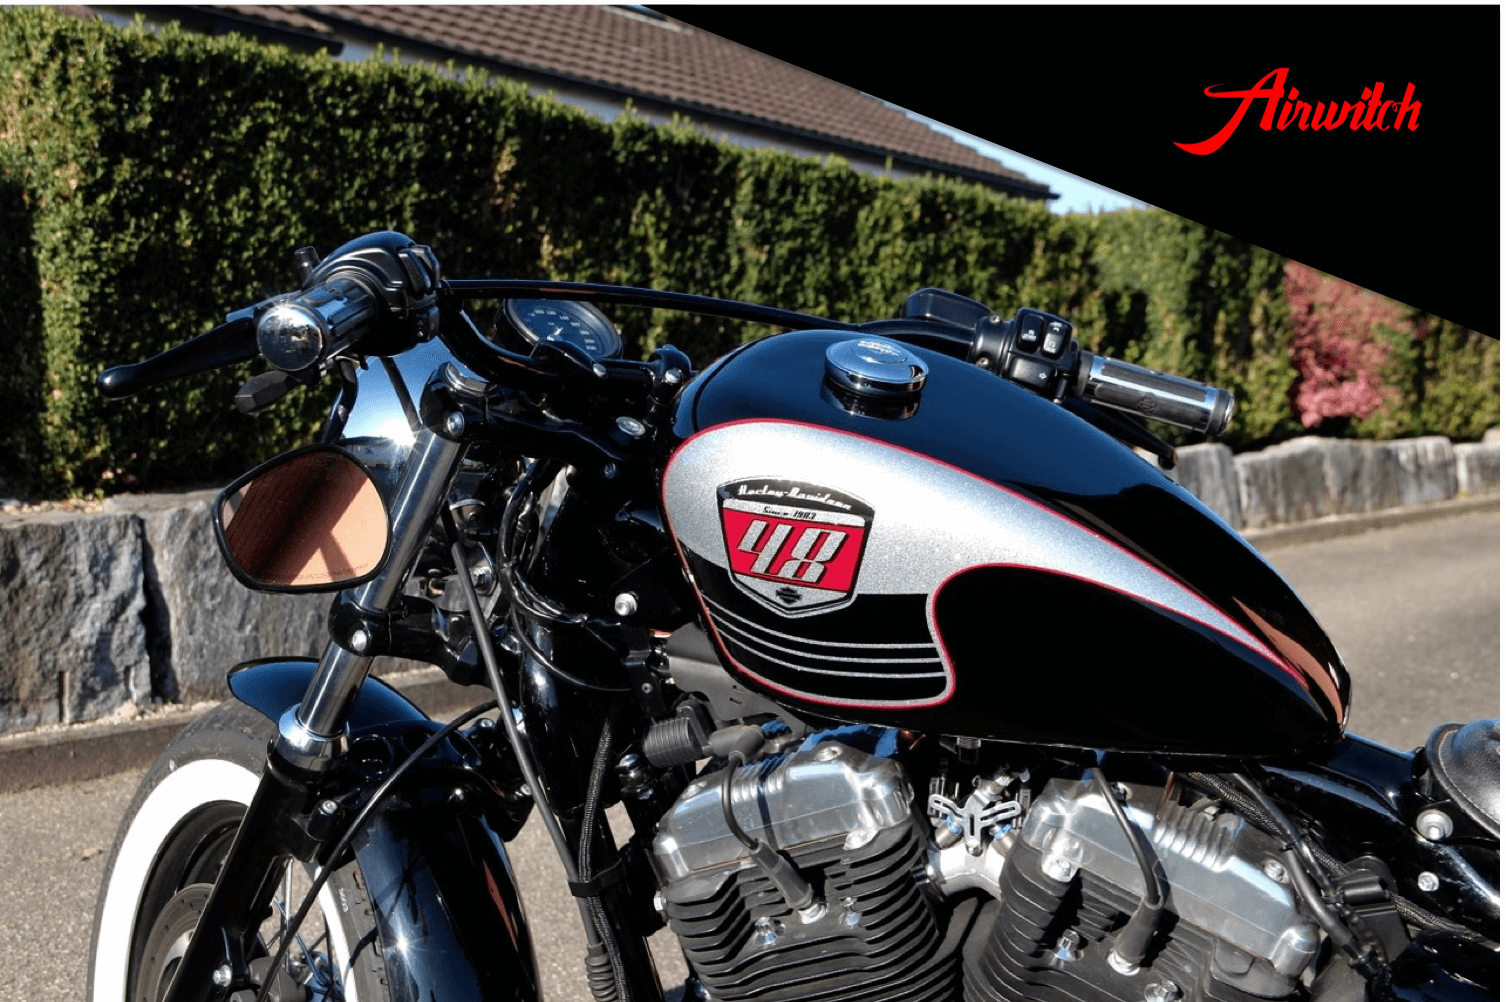 Custom Paint Tank Harley Davidson Forty Eight Retro Racing Lackierung Metalflakes in schwarz, silber, rot mit Scalop